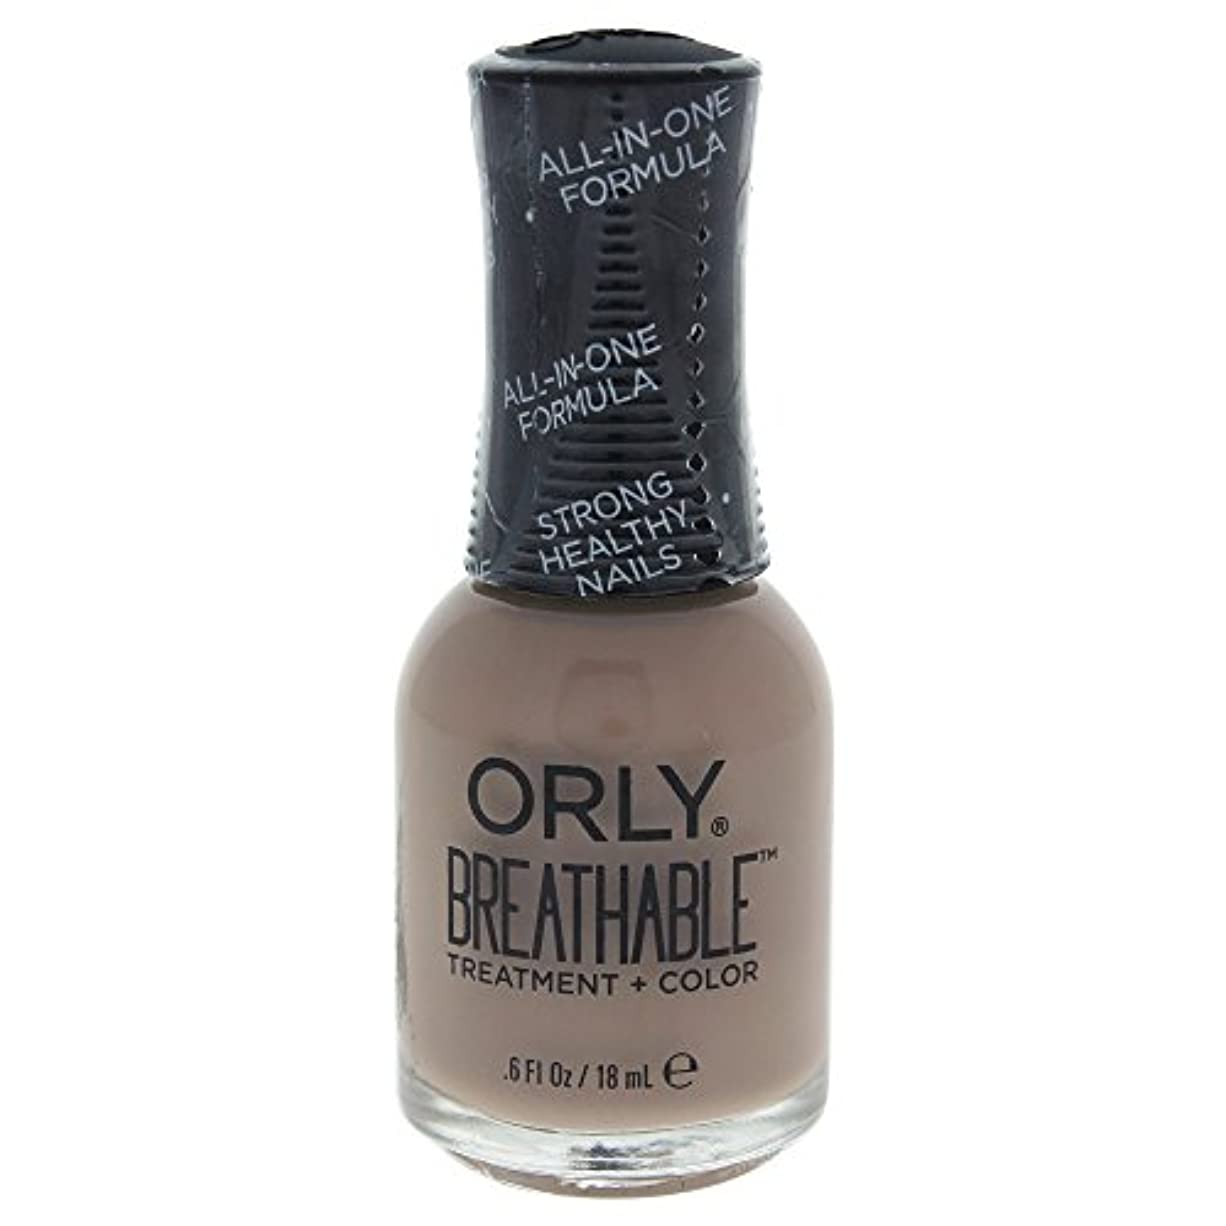 Orly Breathable Treatment + Color Nail Lacquer - Down To Earth - 0.6oz / 18ml